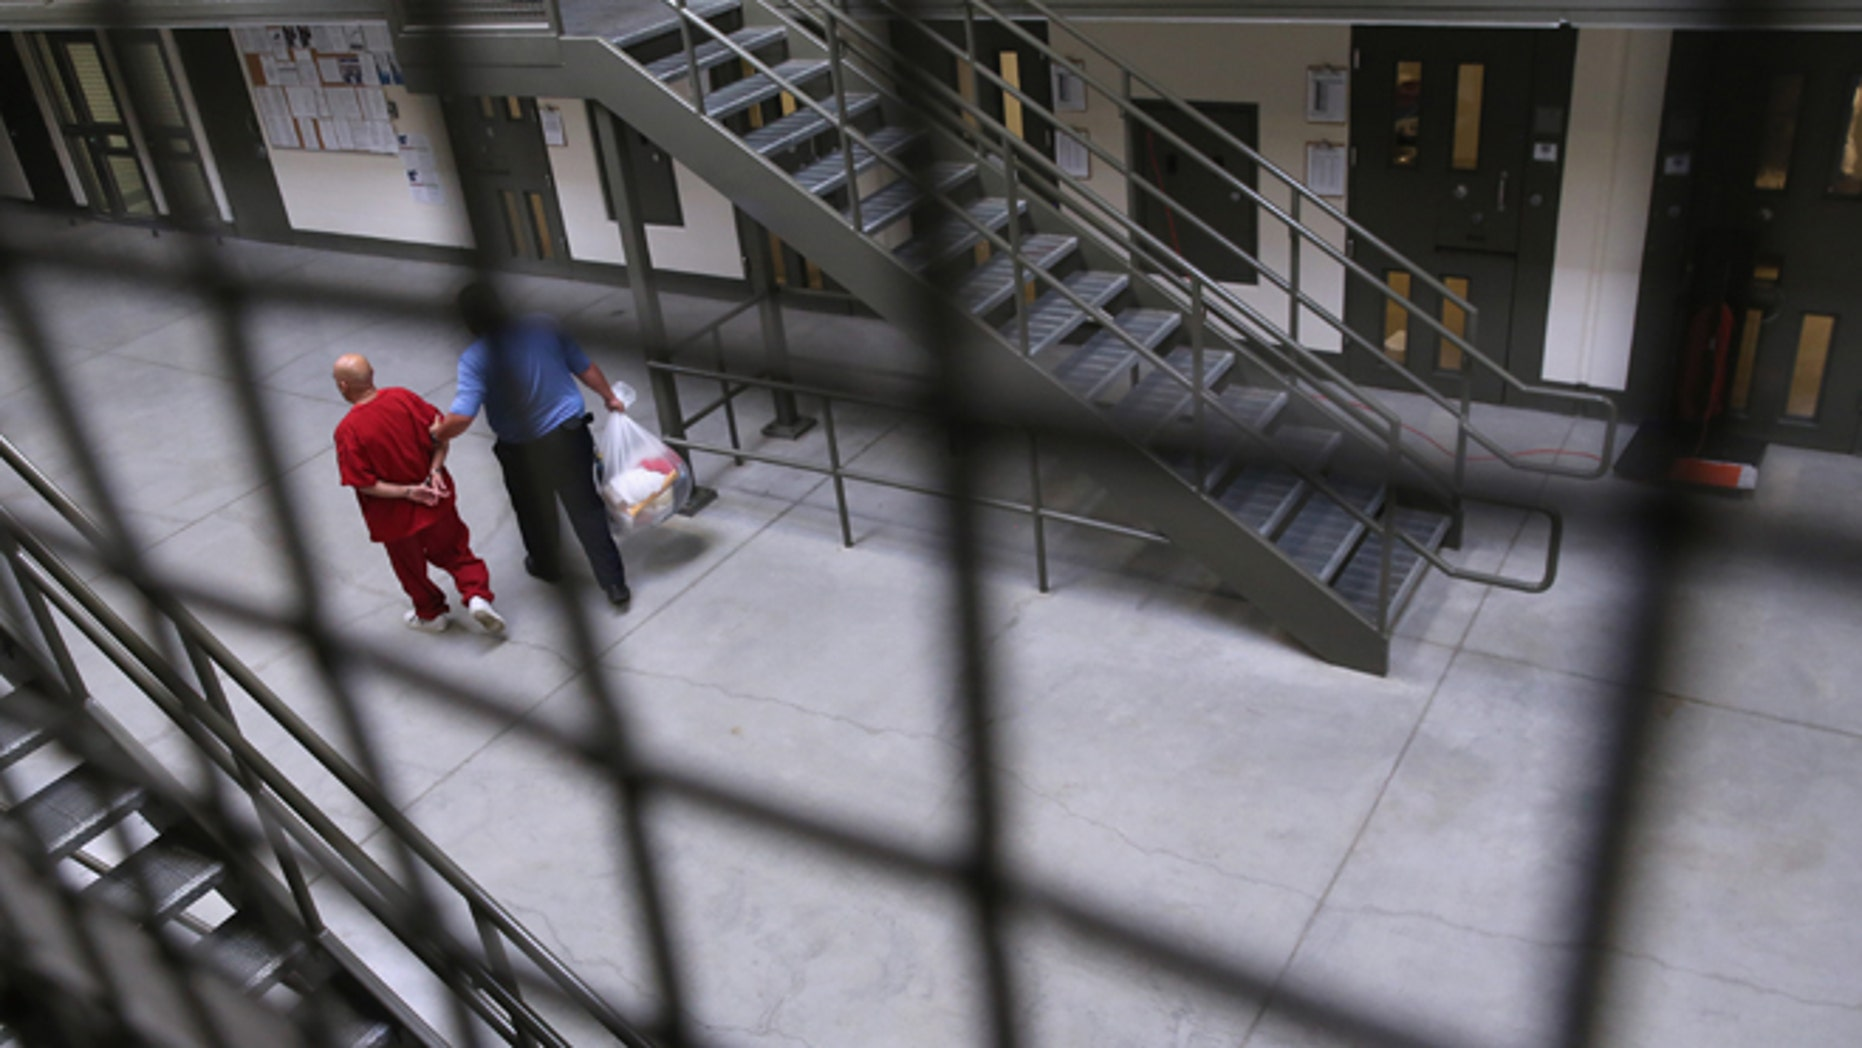 ADELANTO, CA - NOVEMBER 15: A guard escorts an immigrant detainee from his 'segregation cell' back into the general population at the Adelanto Detention Facility on November 15, 2013 in Adelanto, California. Most detainees in segregation cells are sent there for fighting with other immigrants, according to guards. The facility, the largest and newest Immigration and Customs Enforcement (ICE), detention center in California, houses an average of 1,100 immigrants in custody pending a decision in their immigration cases or awaiting deportation. The average stay for a detainee is 29 days. The facility is managed by the private GEO Group. ICE detains an average of 33,000 undocumented immigrants in more than 400 facilities nationwide. (Photo by John Moore/Getty Images)